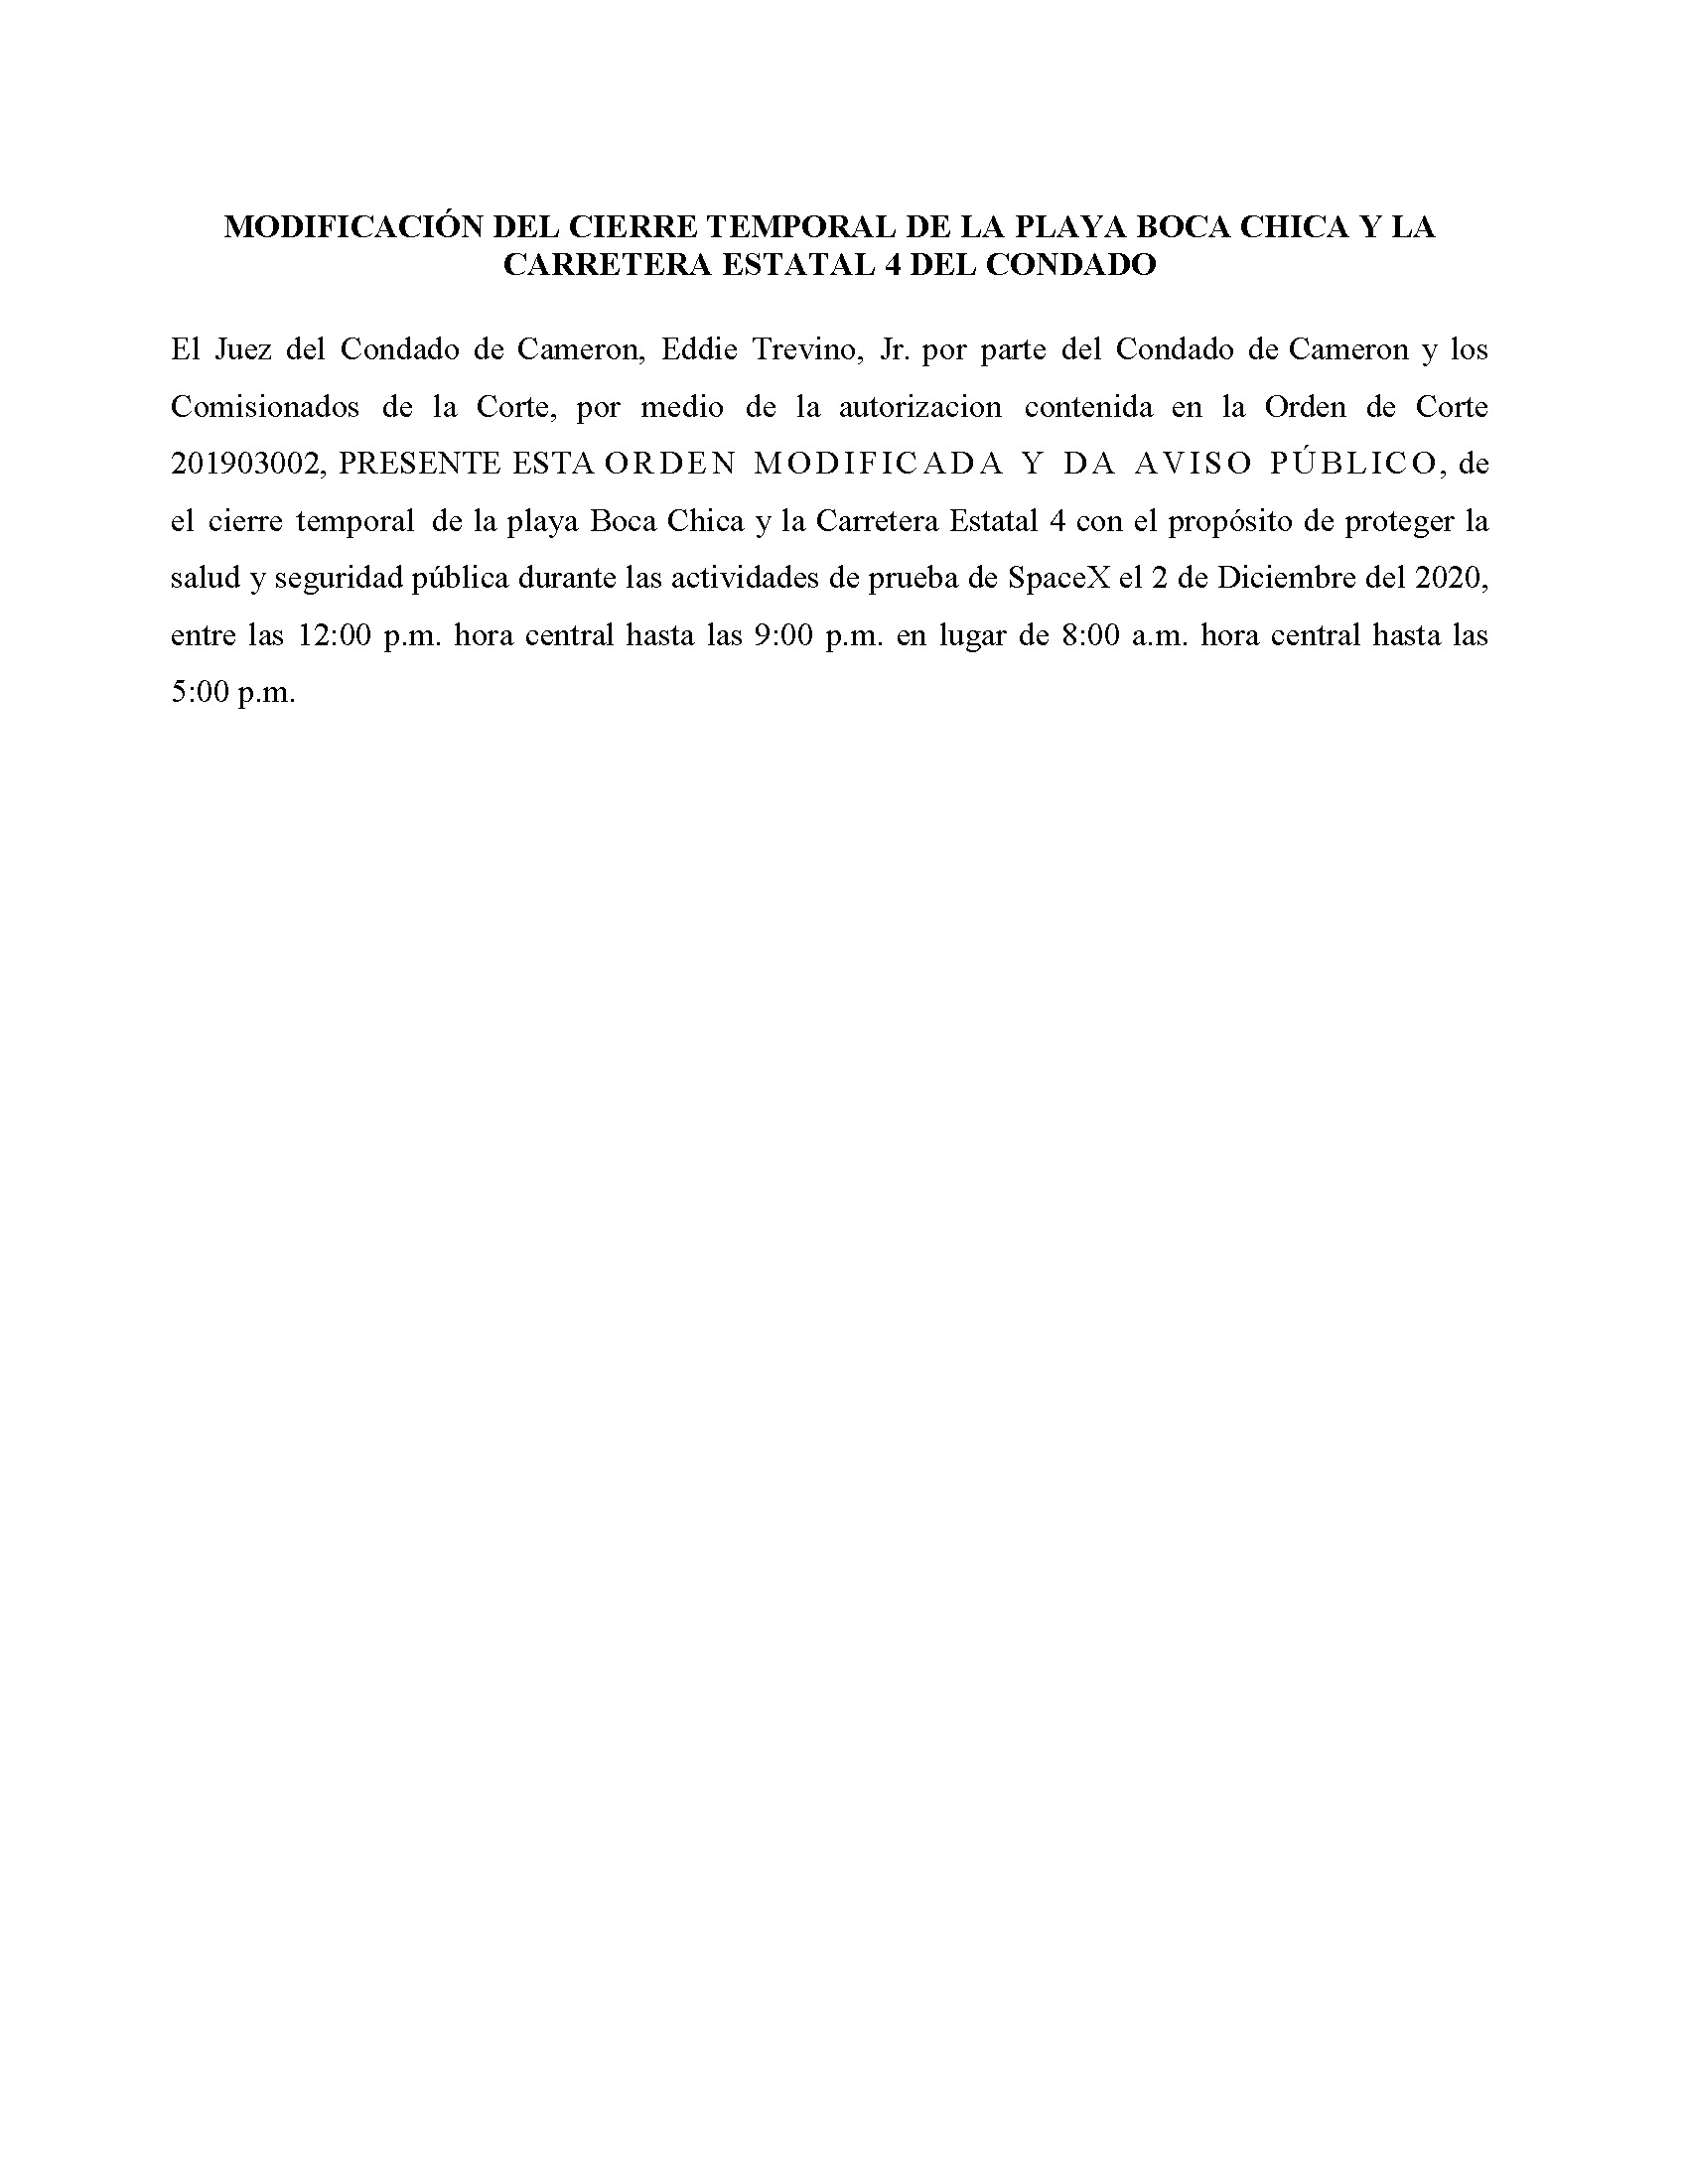 Amended Order In Spanish.12.02.20